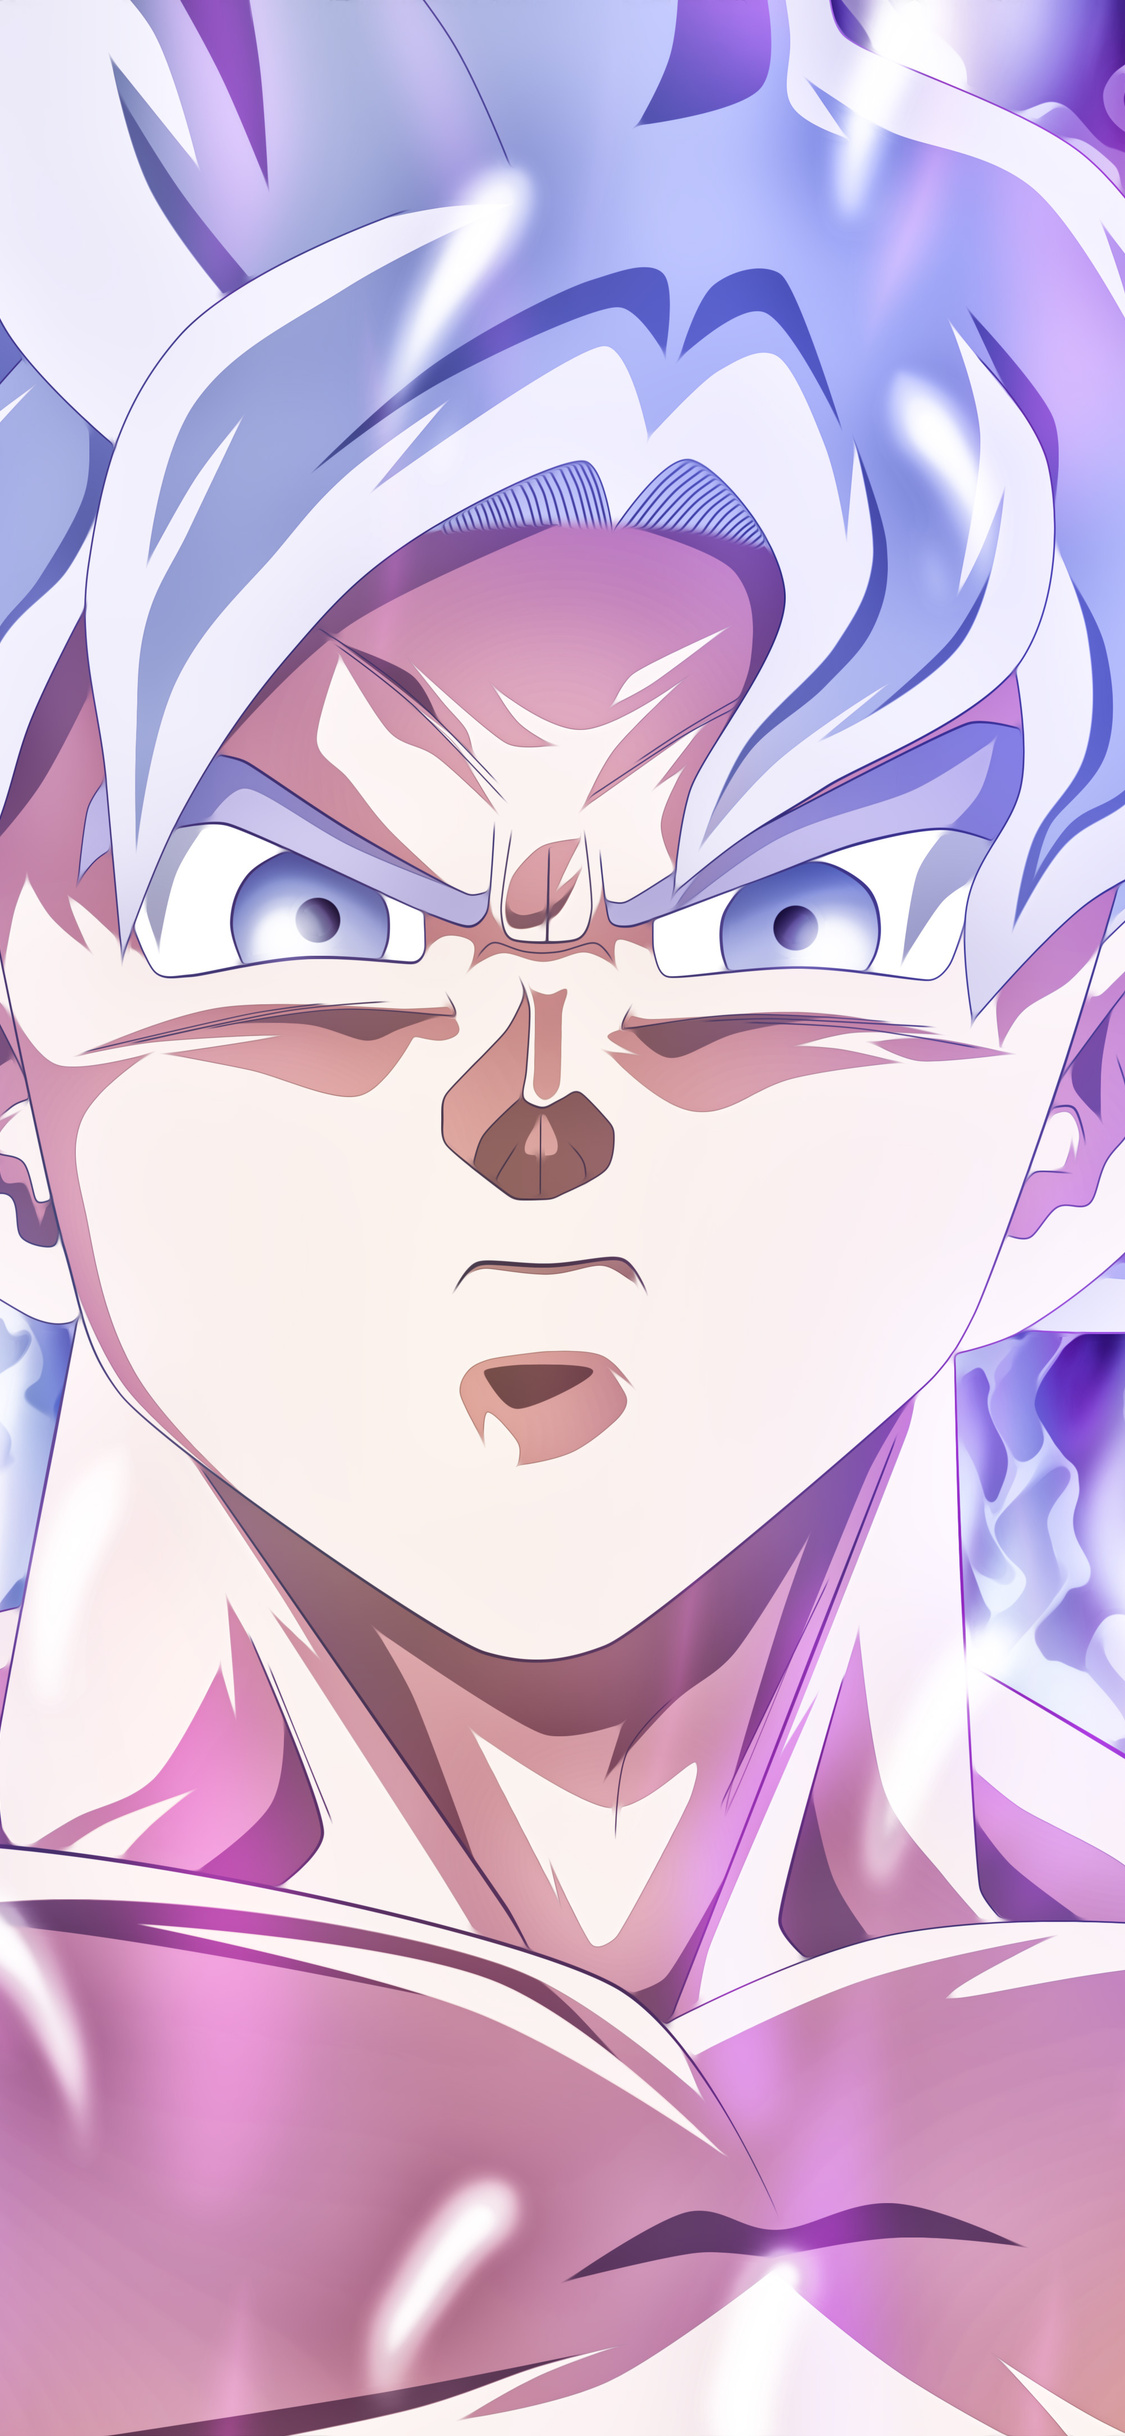 1125x2436 Goku Mastered Ultra Instinct Iphone Xs Iphone 10 Iphone X Hd 4k Wallpapers Images Backgrounds Photos And Pictures